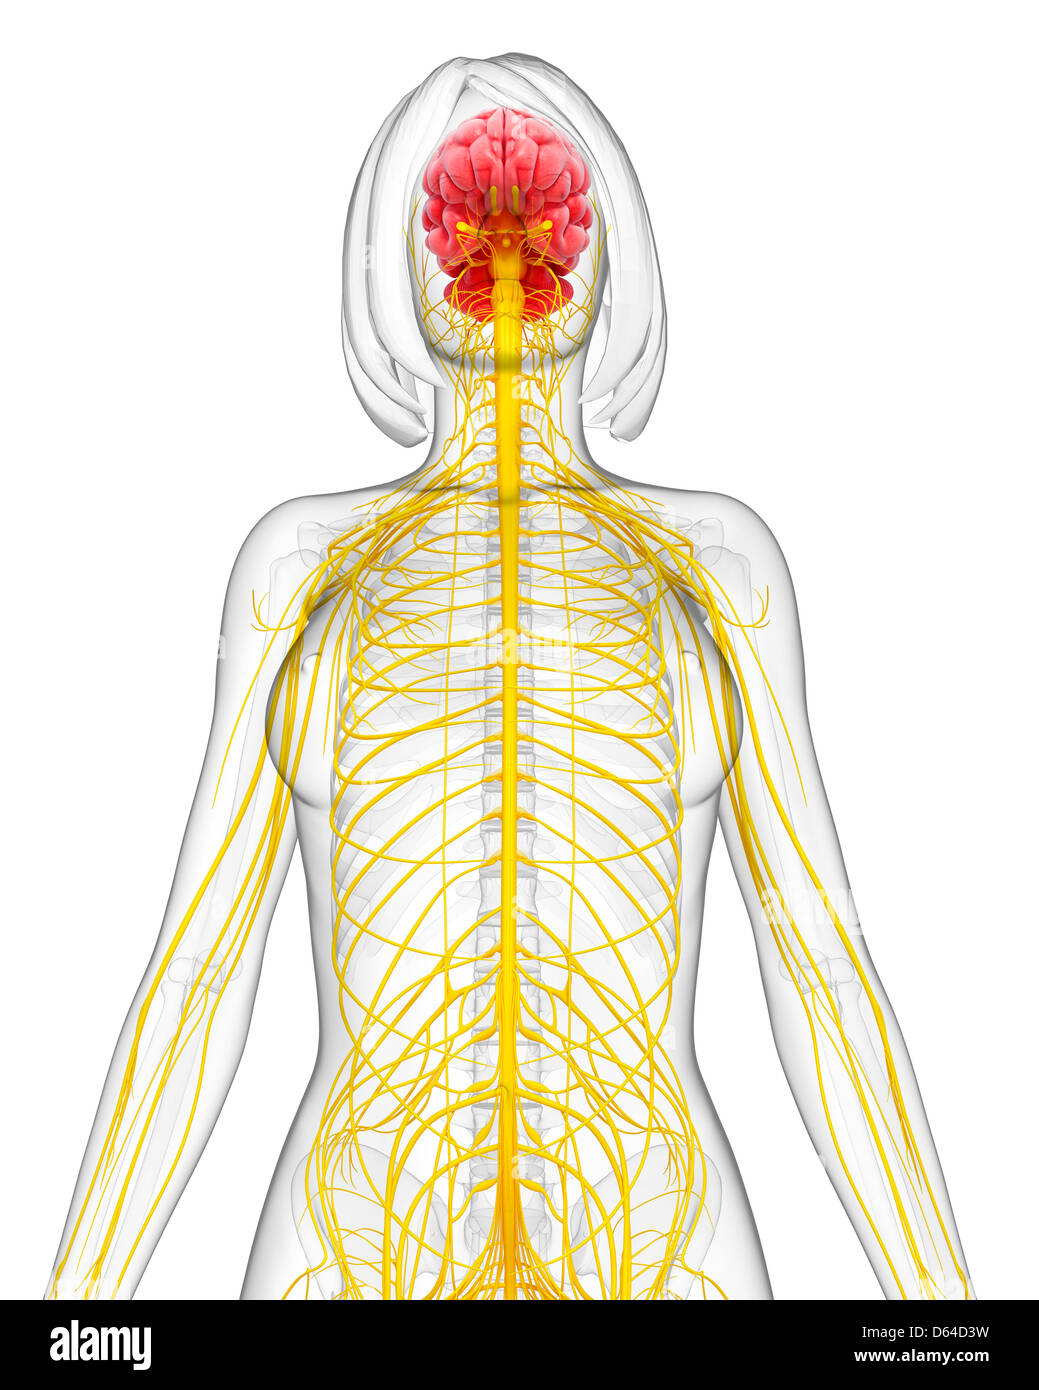 Top view of normal brain stock photos top view of normal brain female nervous system artwork stock image ccuart Image collections